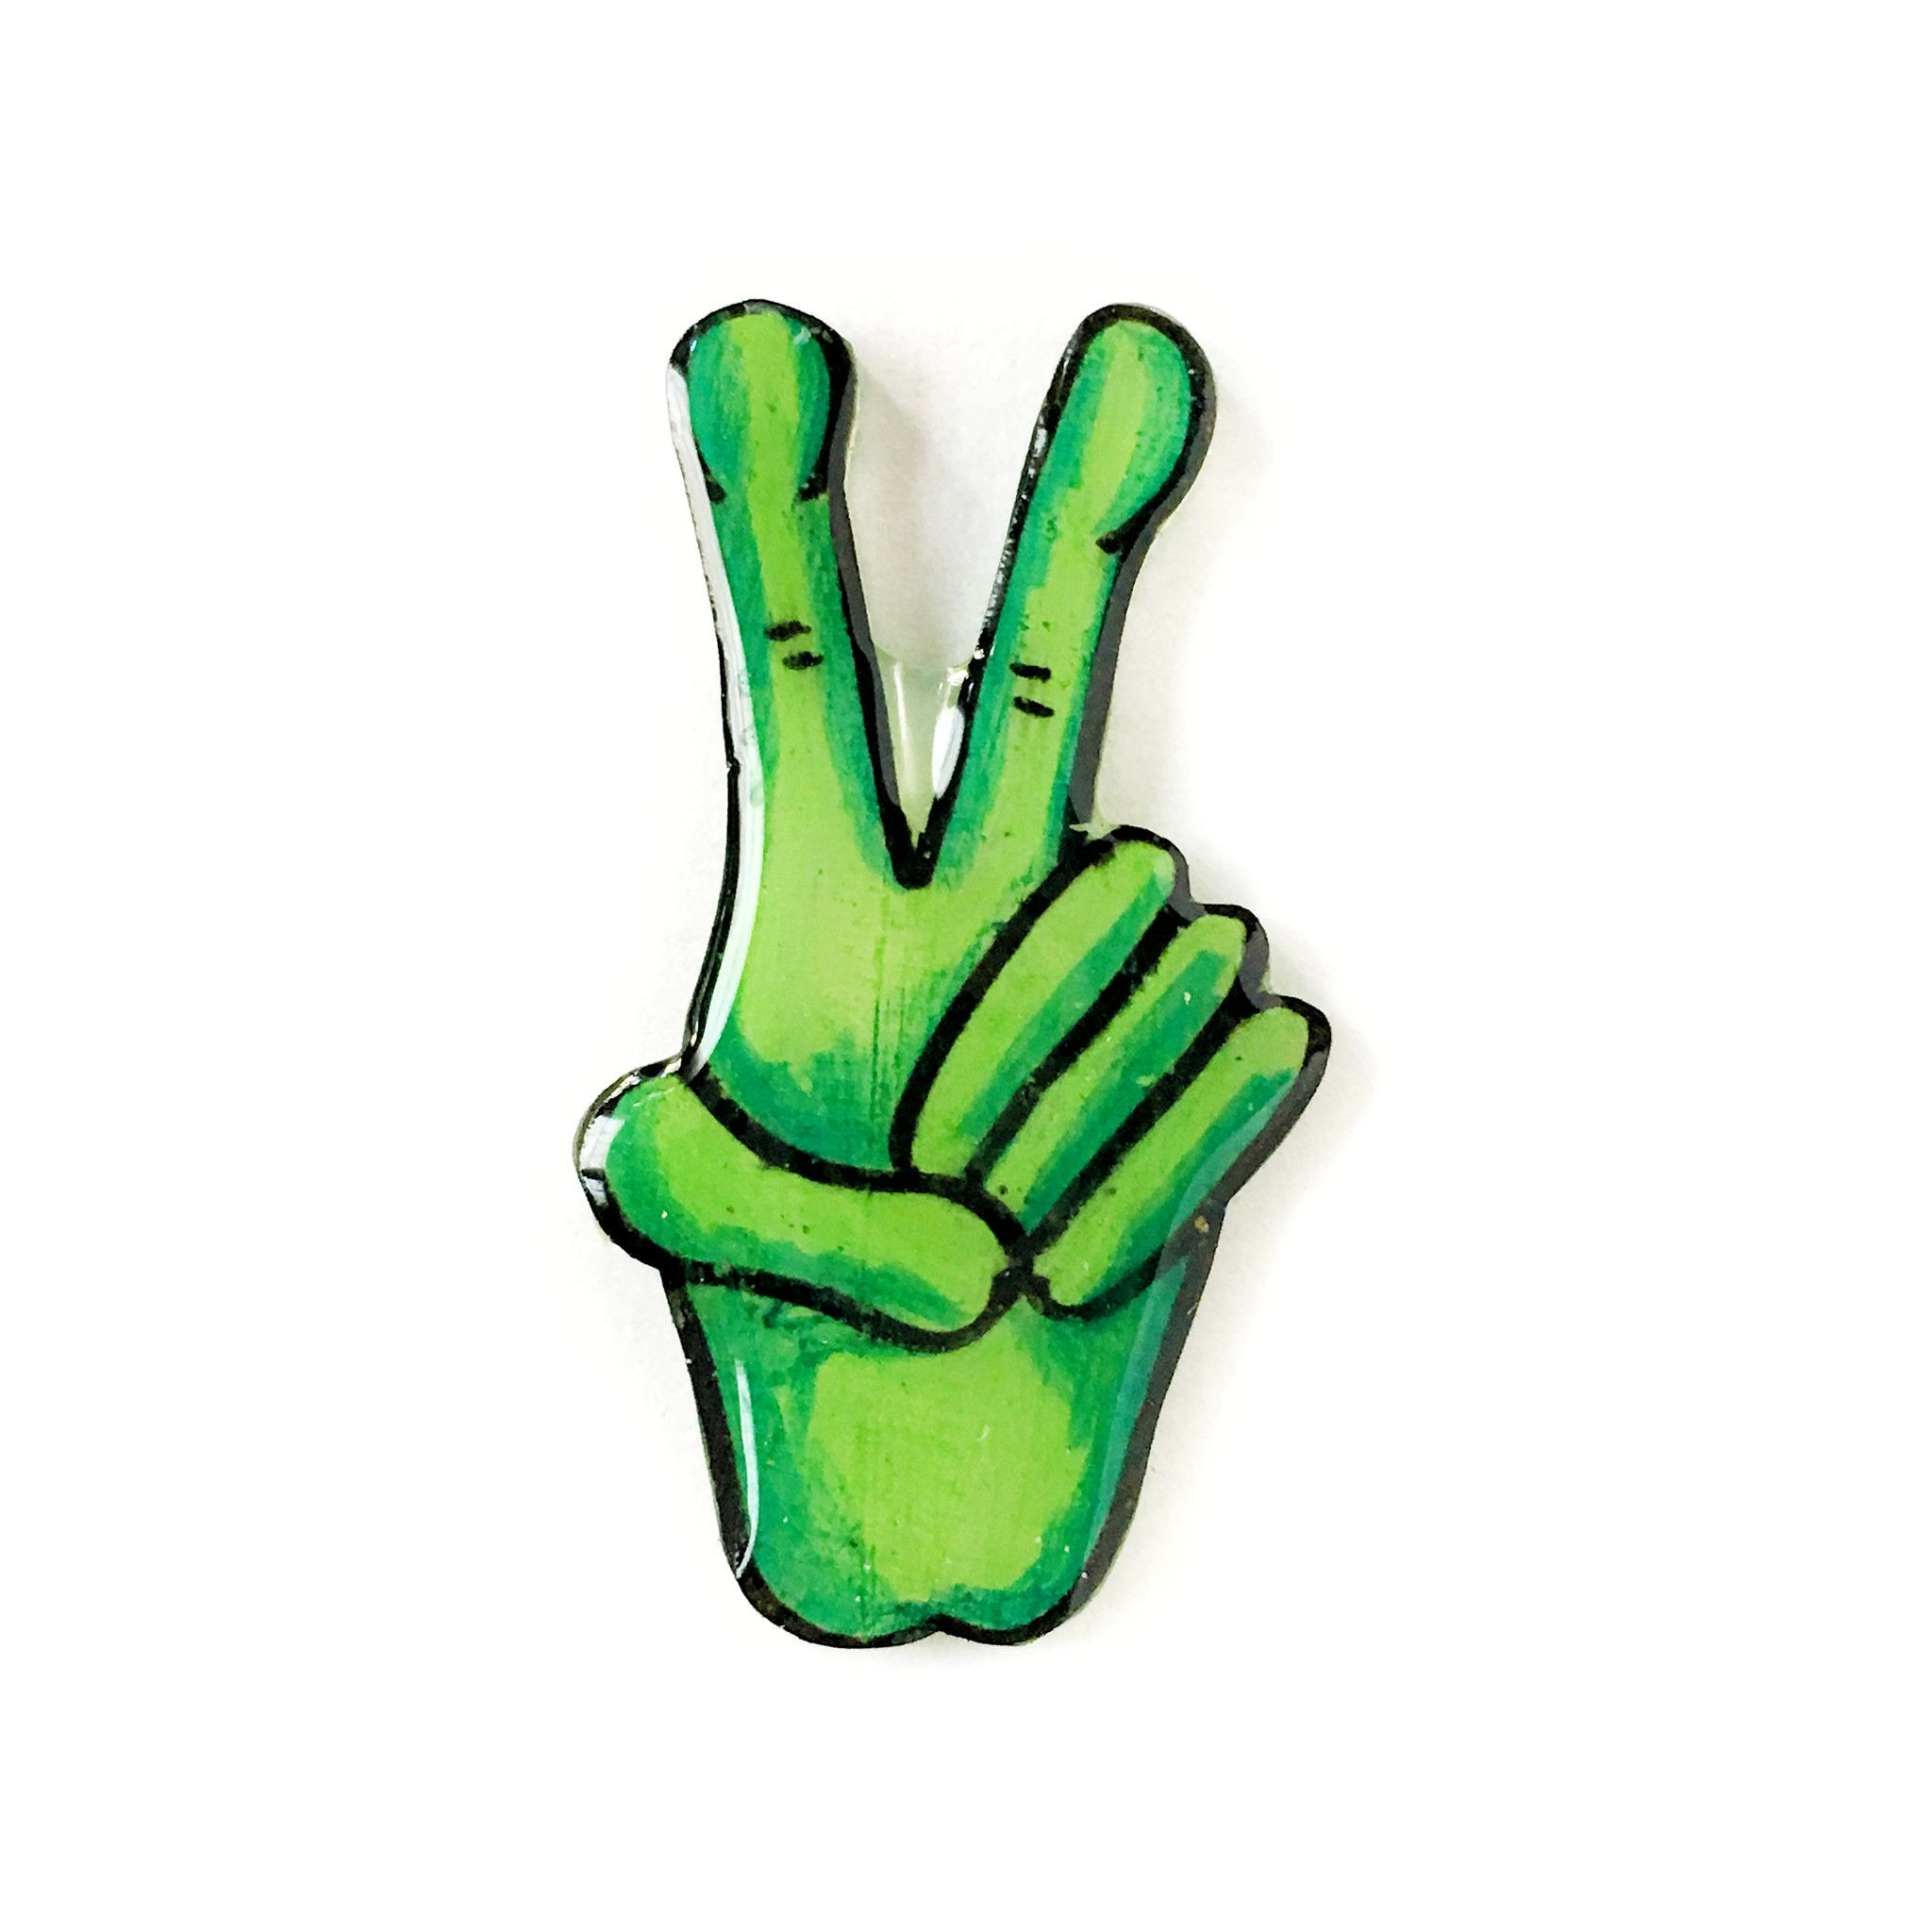 This is a hand drawn pin of a green alien hand giving the peace sign